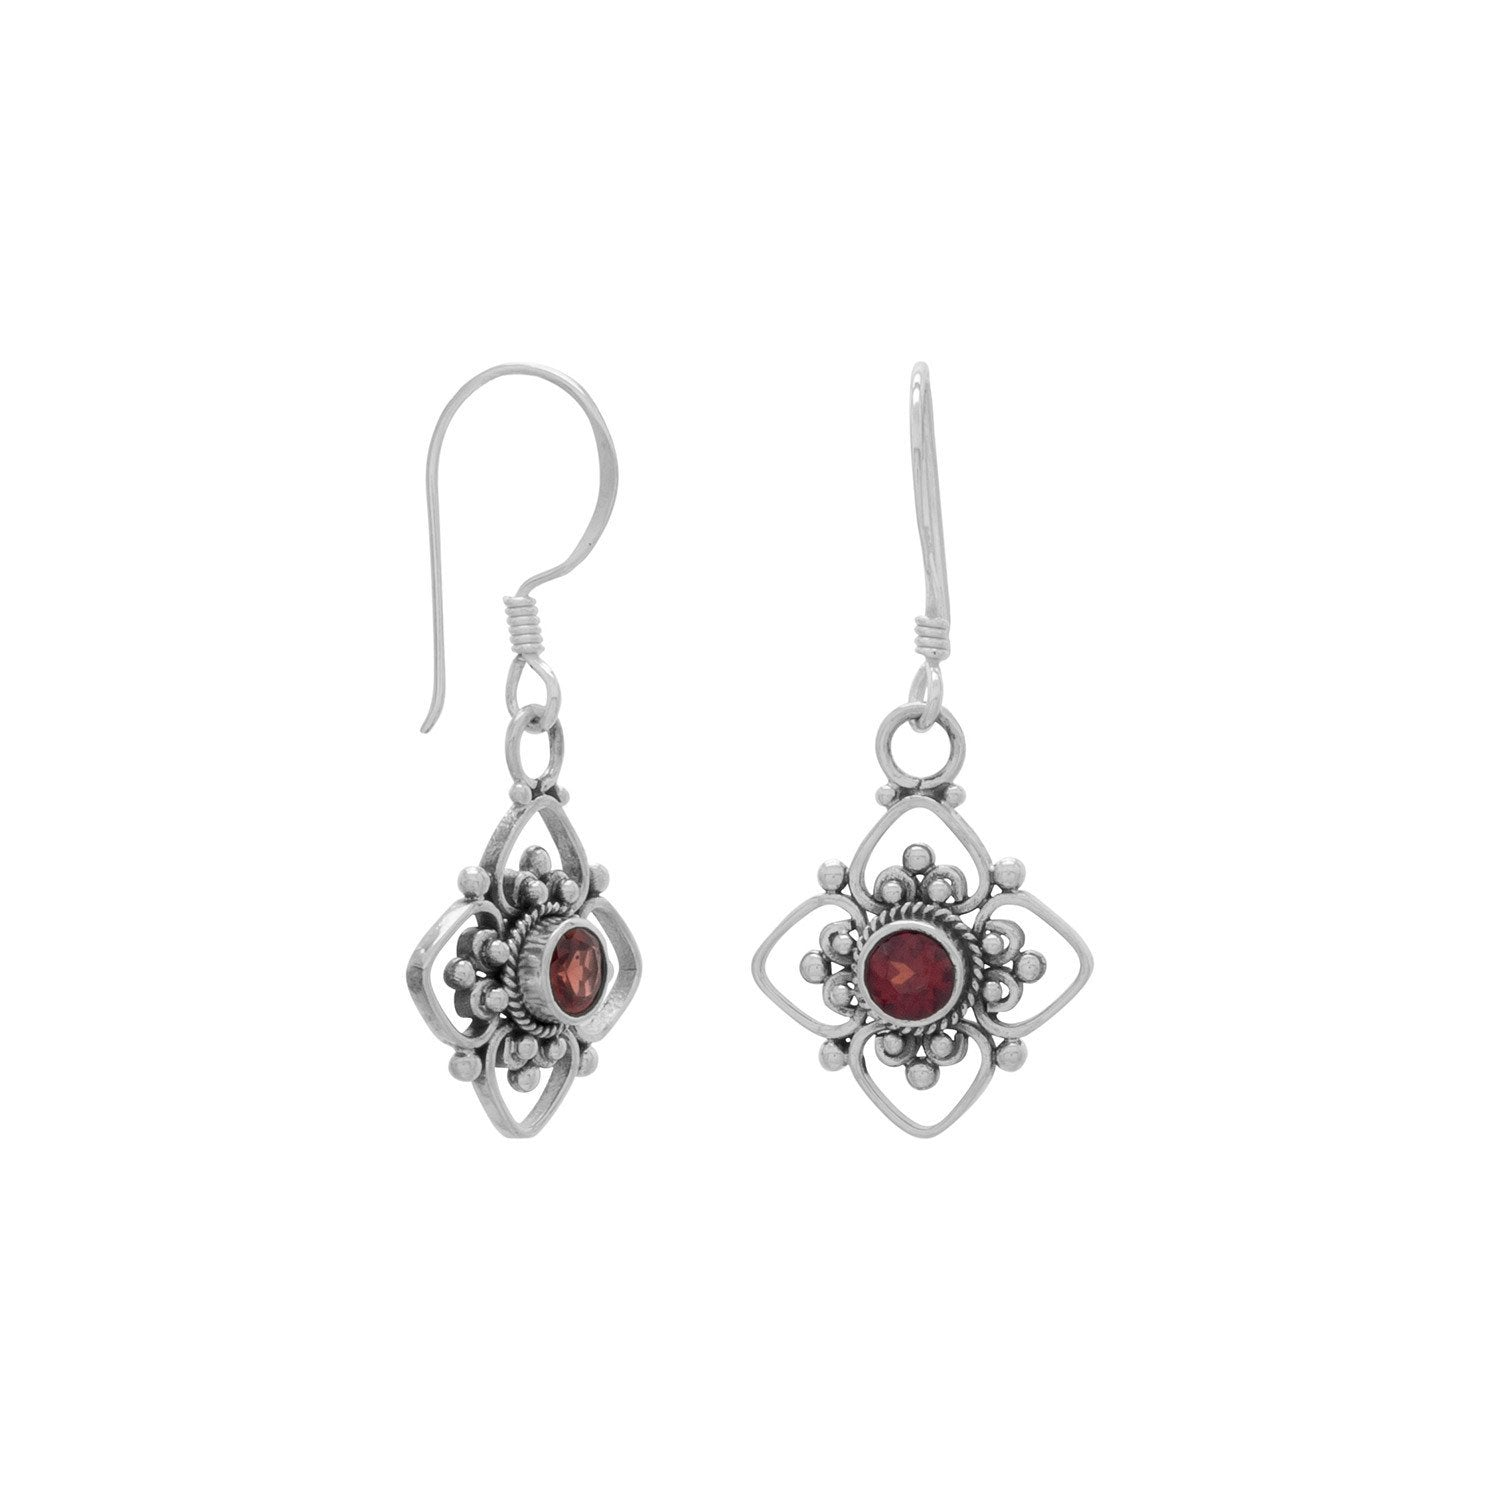 Round Faceted Garnet/Cut Flower Design Earrings on French Wire - Rocky Mt. Outlet Inc - Shop & Save 24/7